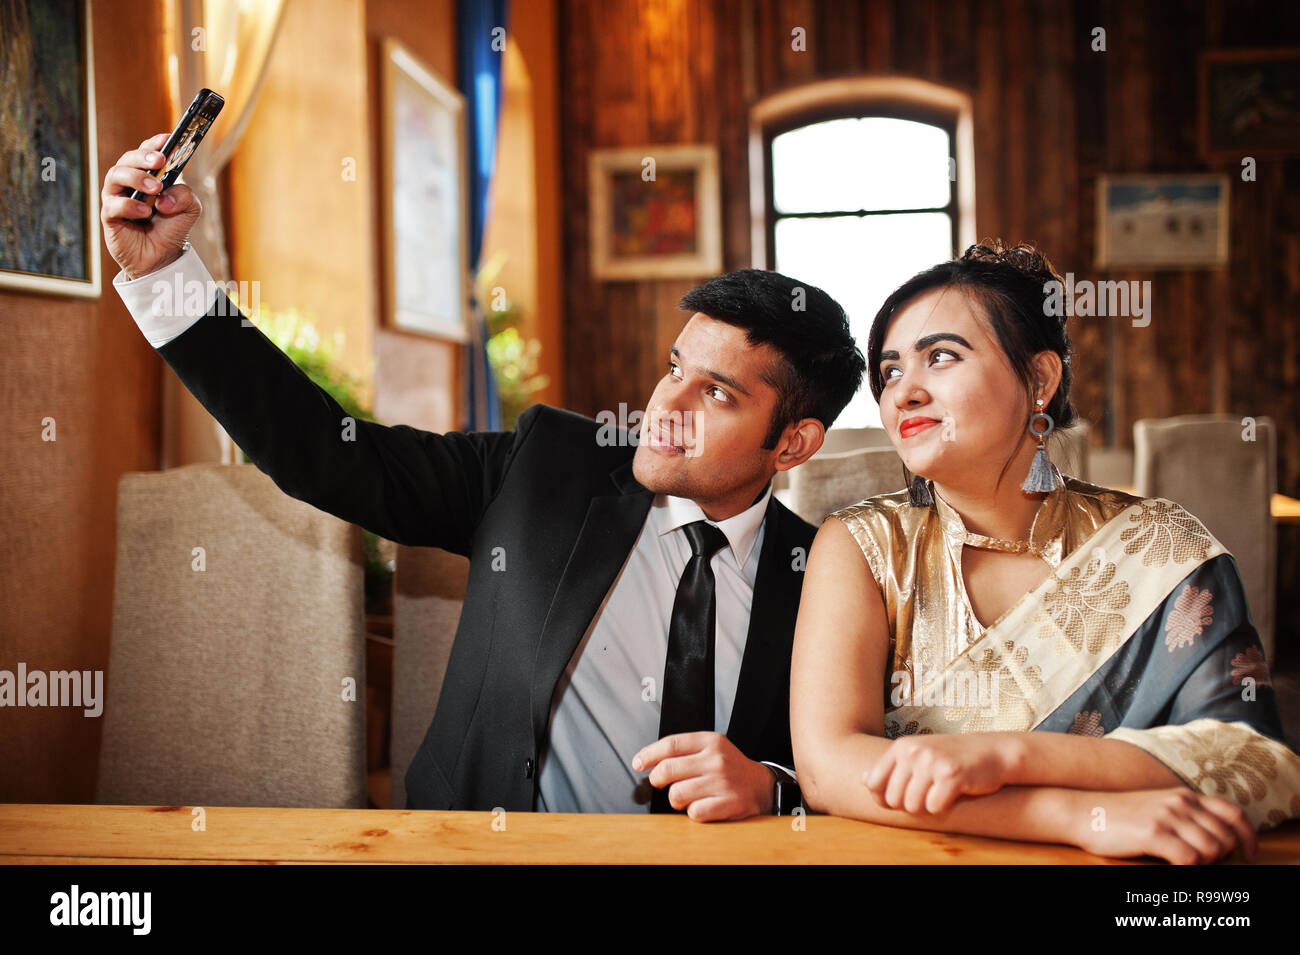 Elegant And Fashionable Indian Friends Couple Of Woman In Saree Man Suit Posed Indoor Cafe Making Selfie On Mobile Phone